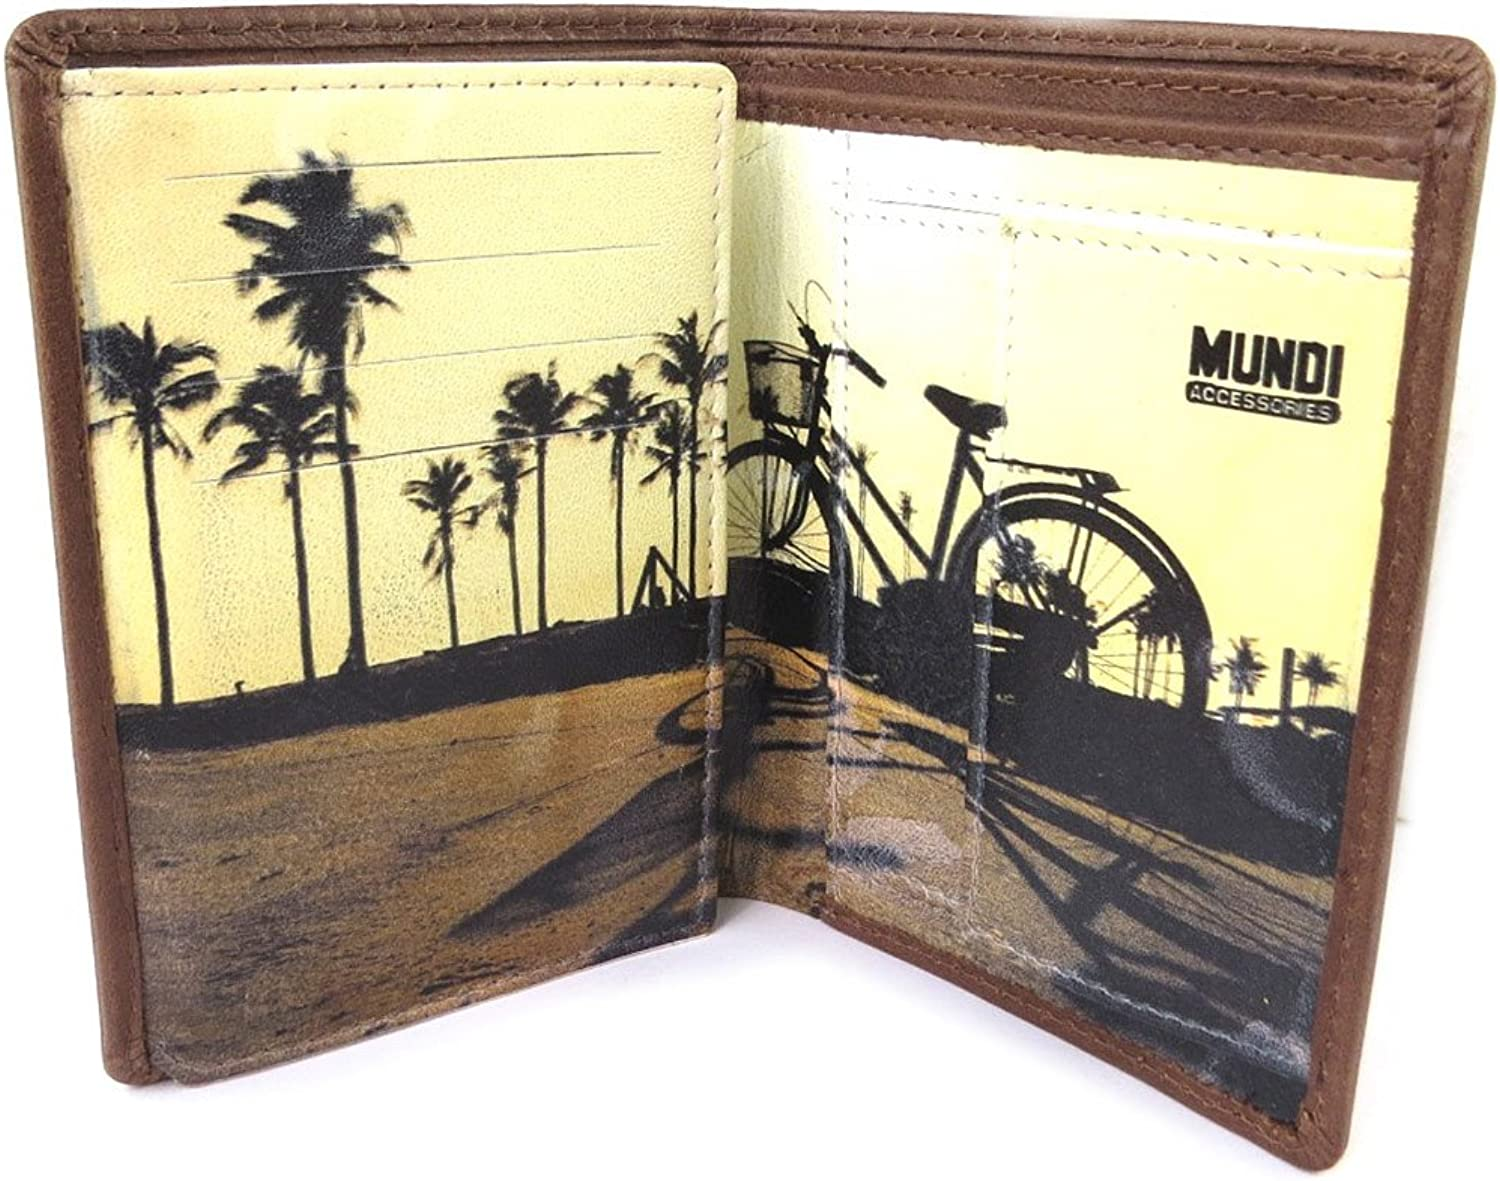 Mundi [N8739]  European wallet leather 'Mundi' brown vintage  12.5x9x2 cm (4.92''x3.54''x0.79'').